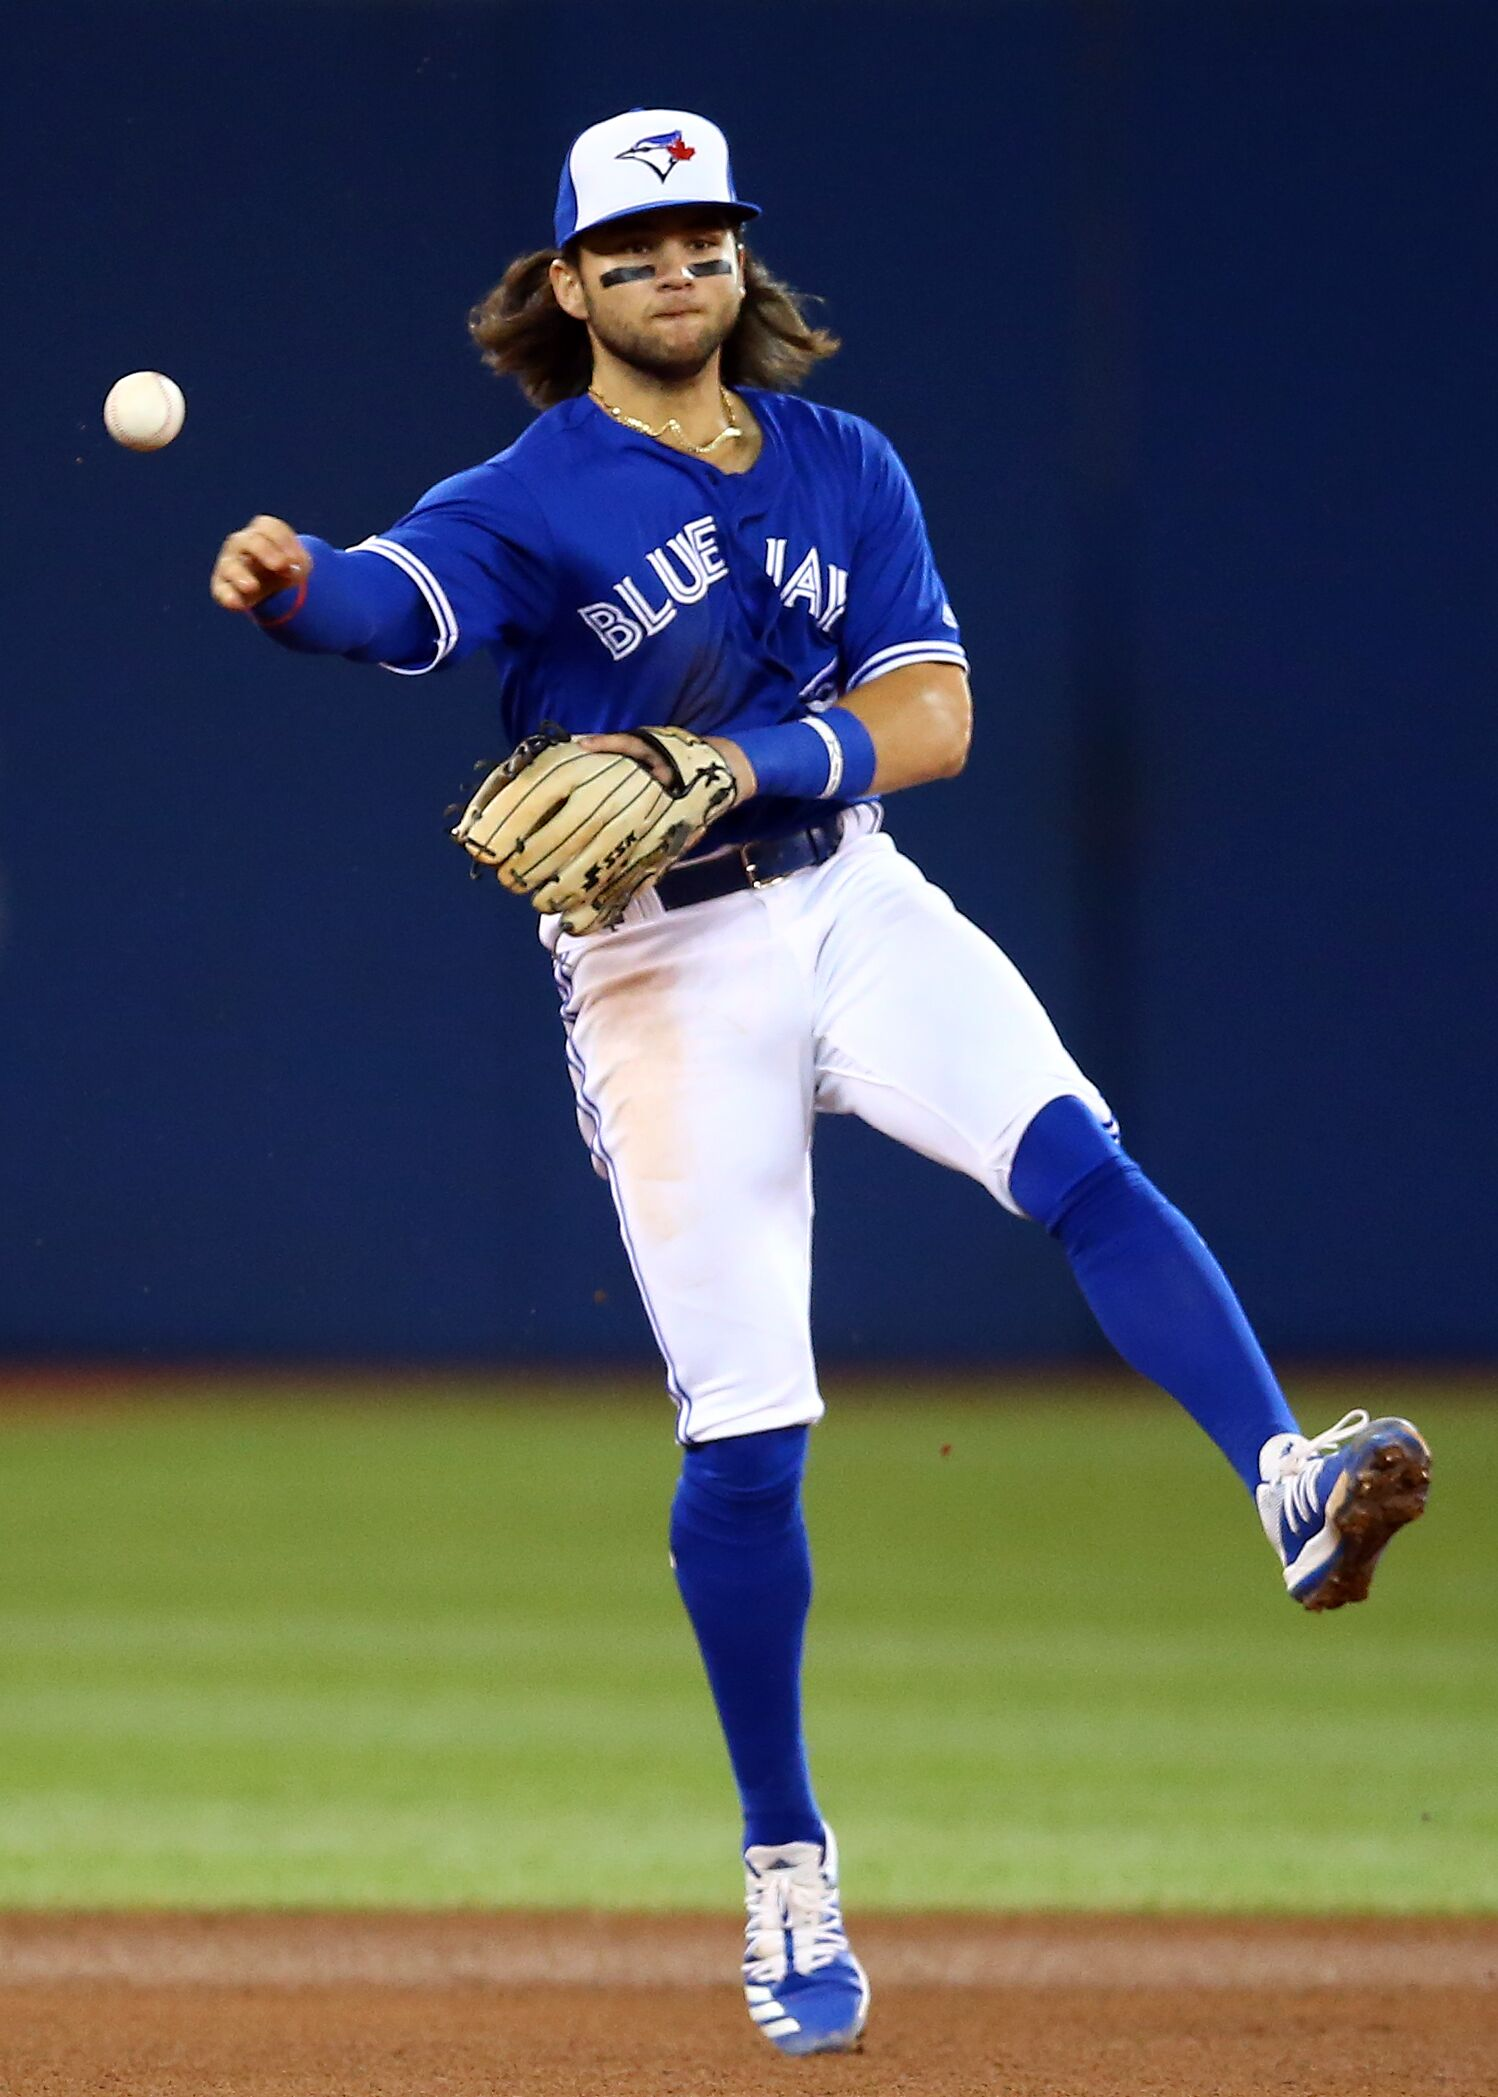 Blue Jays: Why was Bo Bichette allowed to stay in the game?